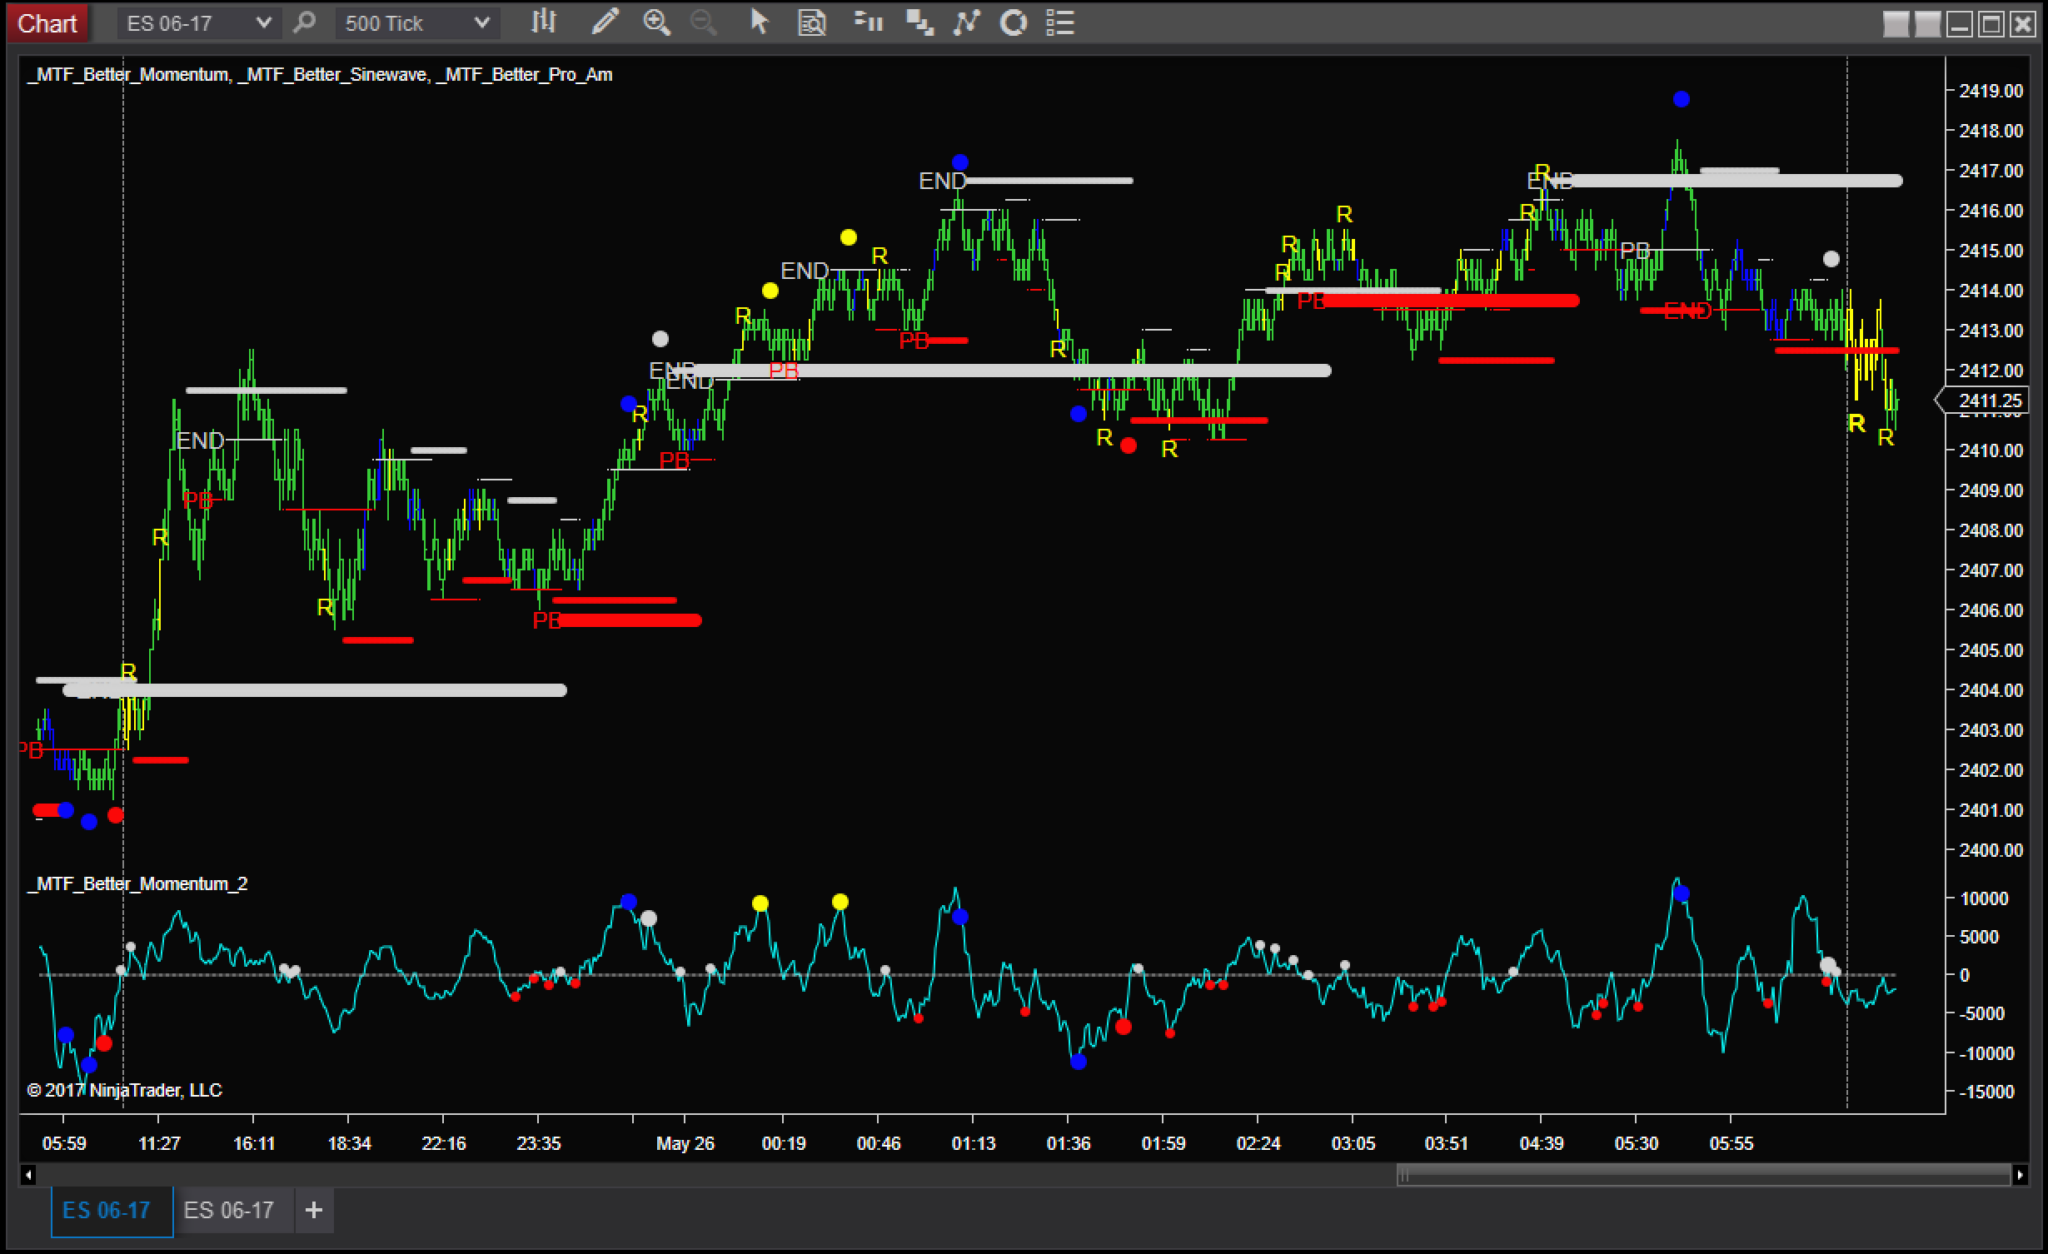 image 1 of MTF Better indicators on NinjaTrader 8